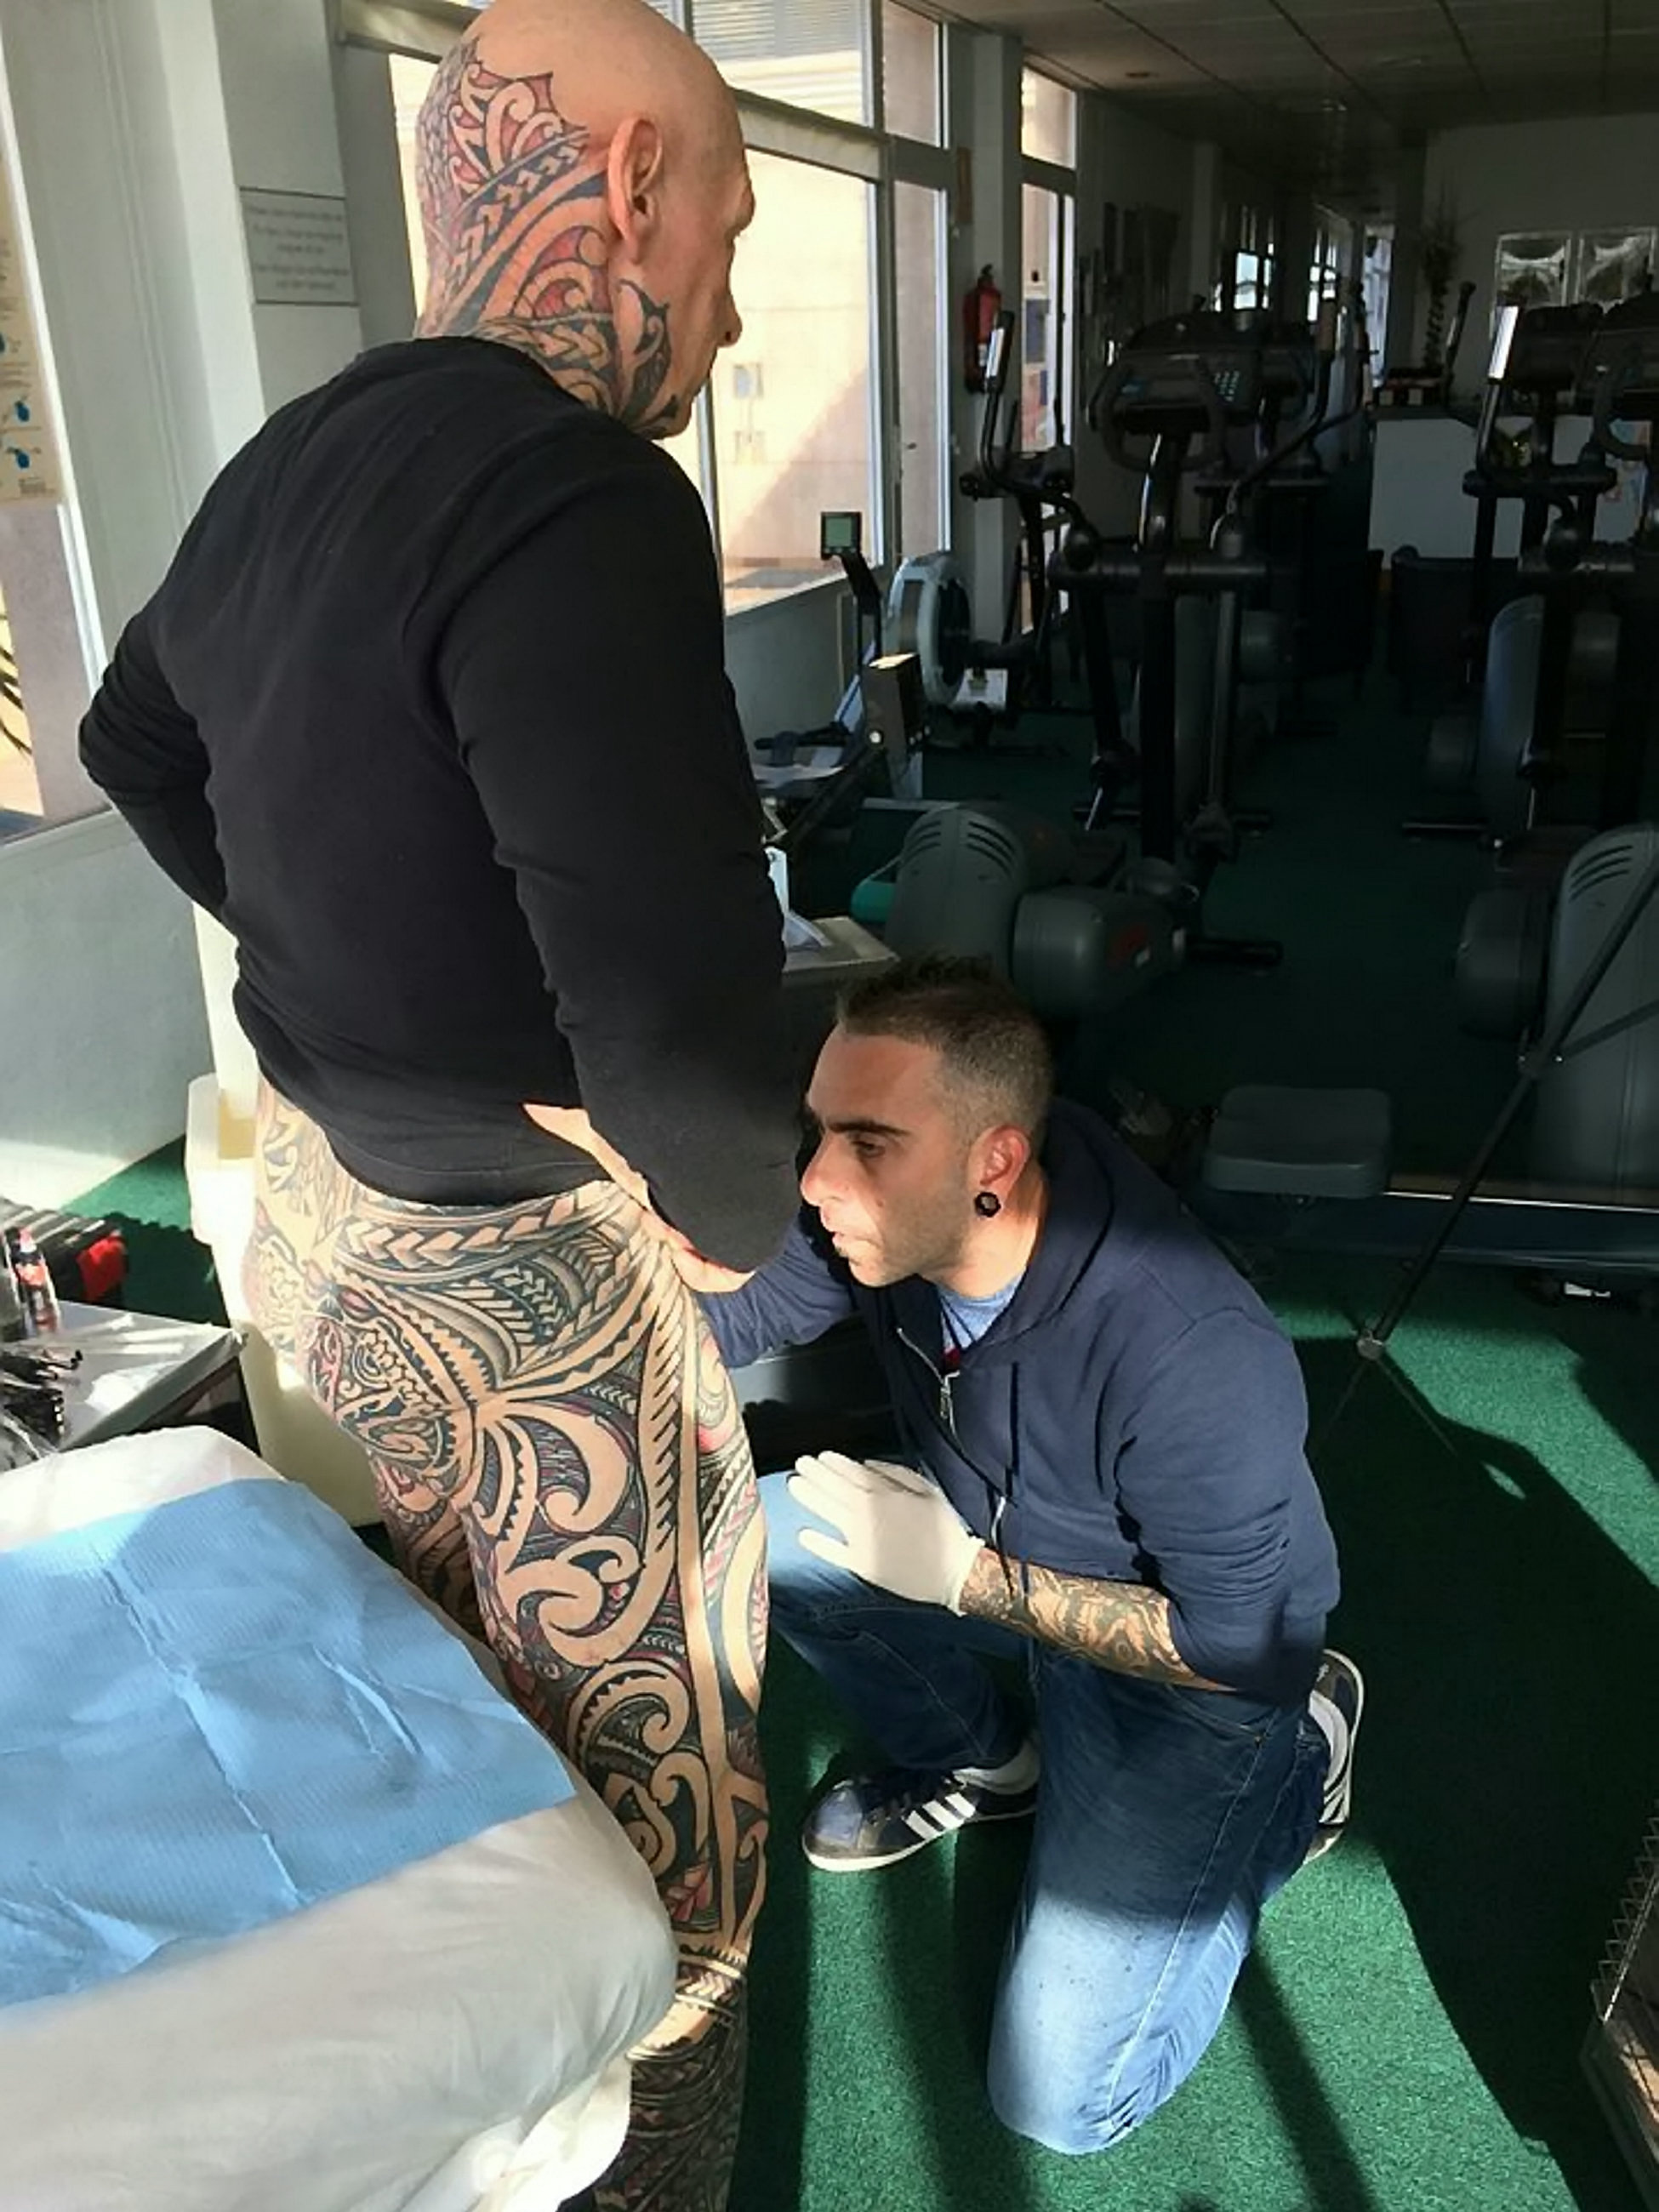 Man Spends £7.5K To Get Every Body Part Tattoo Including His Penis. Credit: SWNS